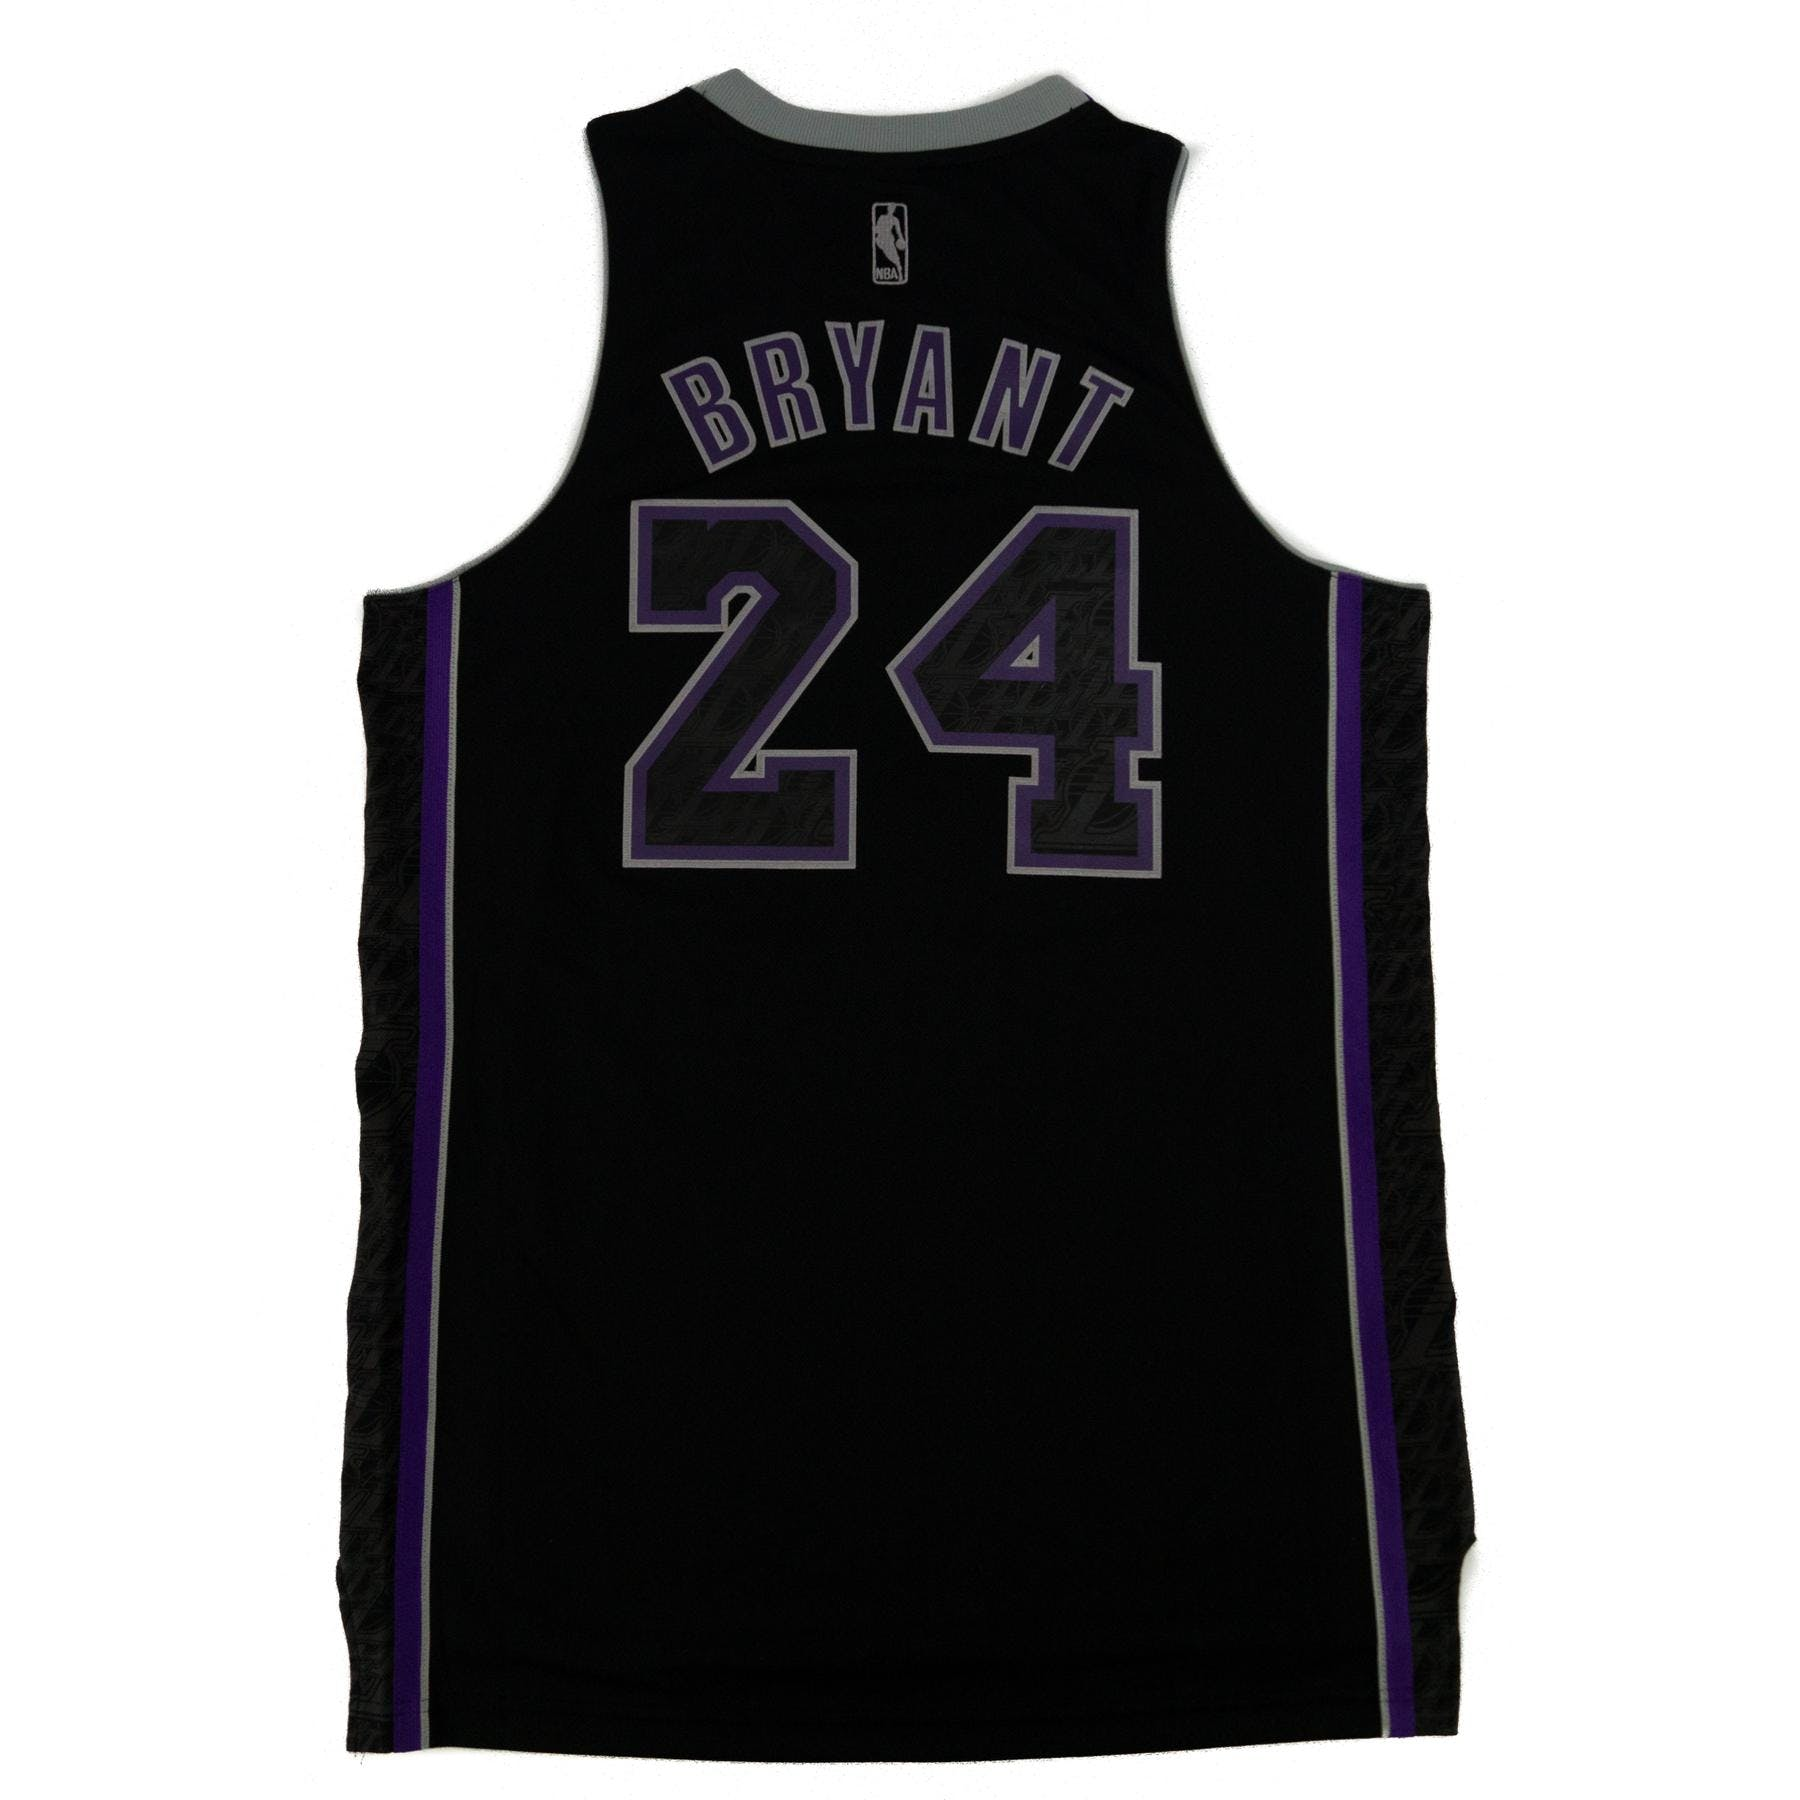 ba1ad2450f7 Kobe Bryant Los Angeles Lakers Black Adidas Carbon Jersey